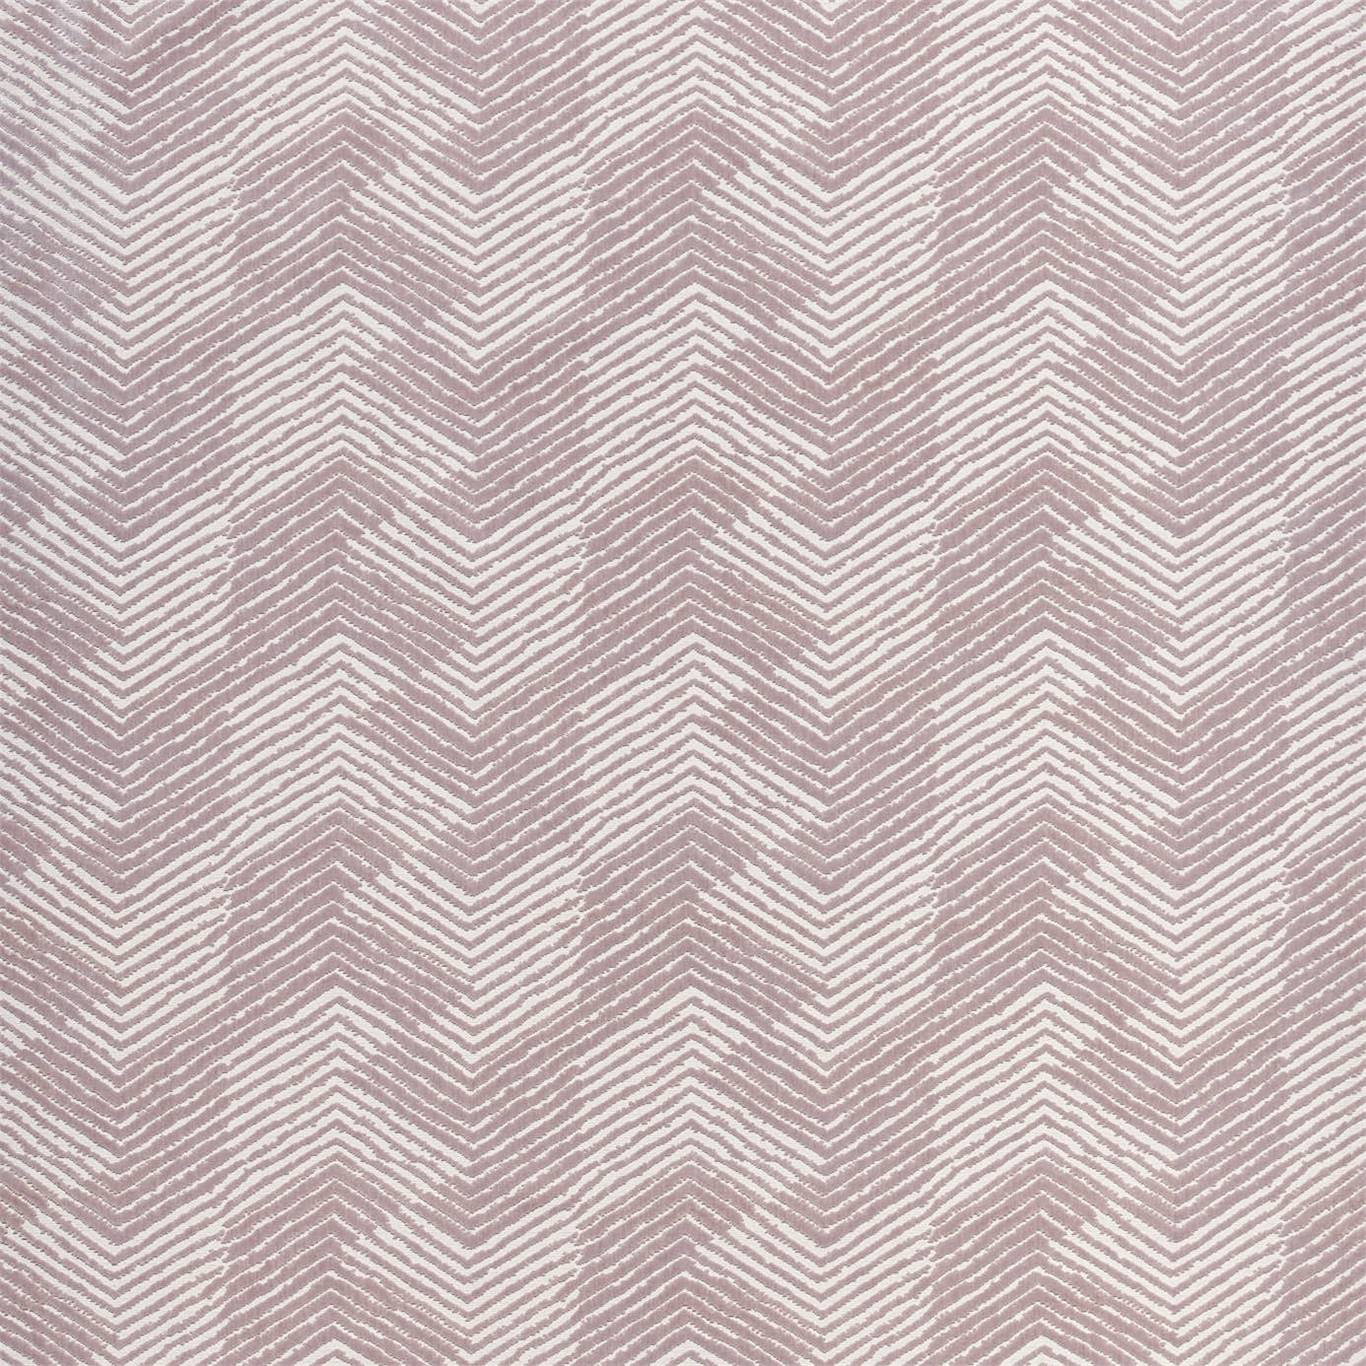 HMTC133492 Collection - Momentum 13 Fabric